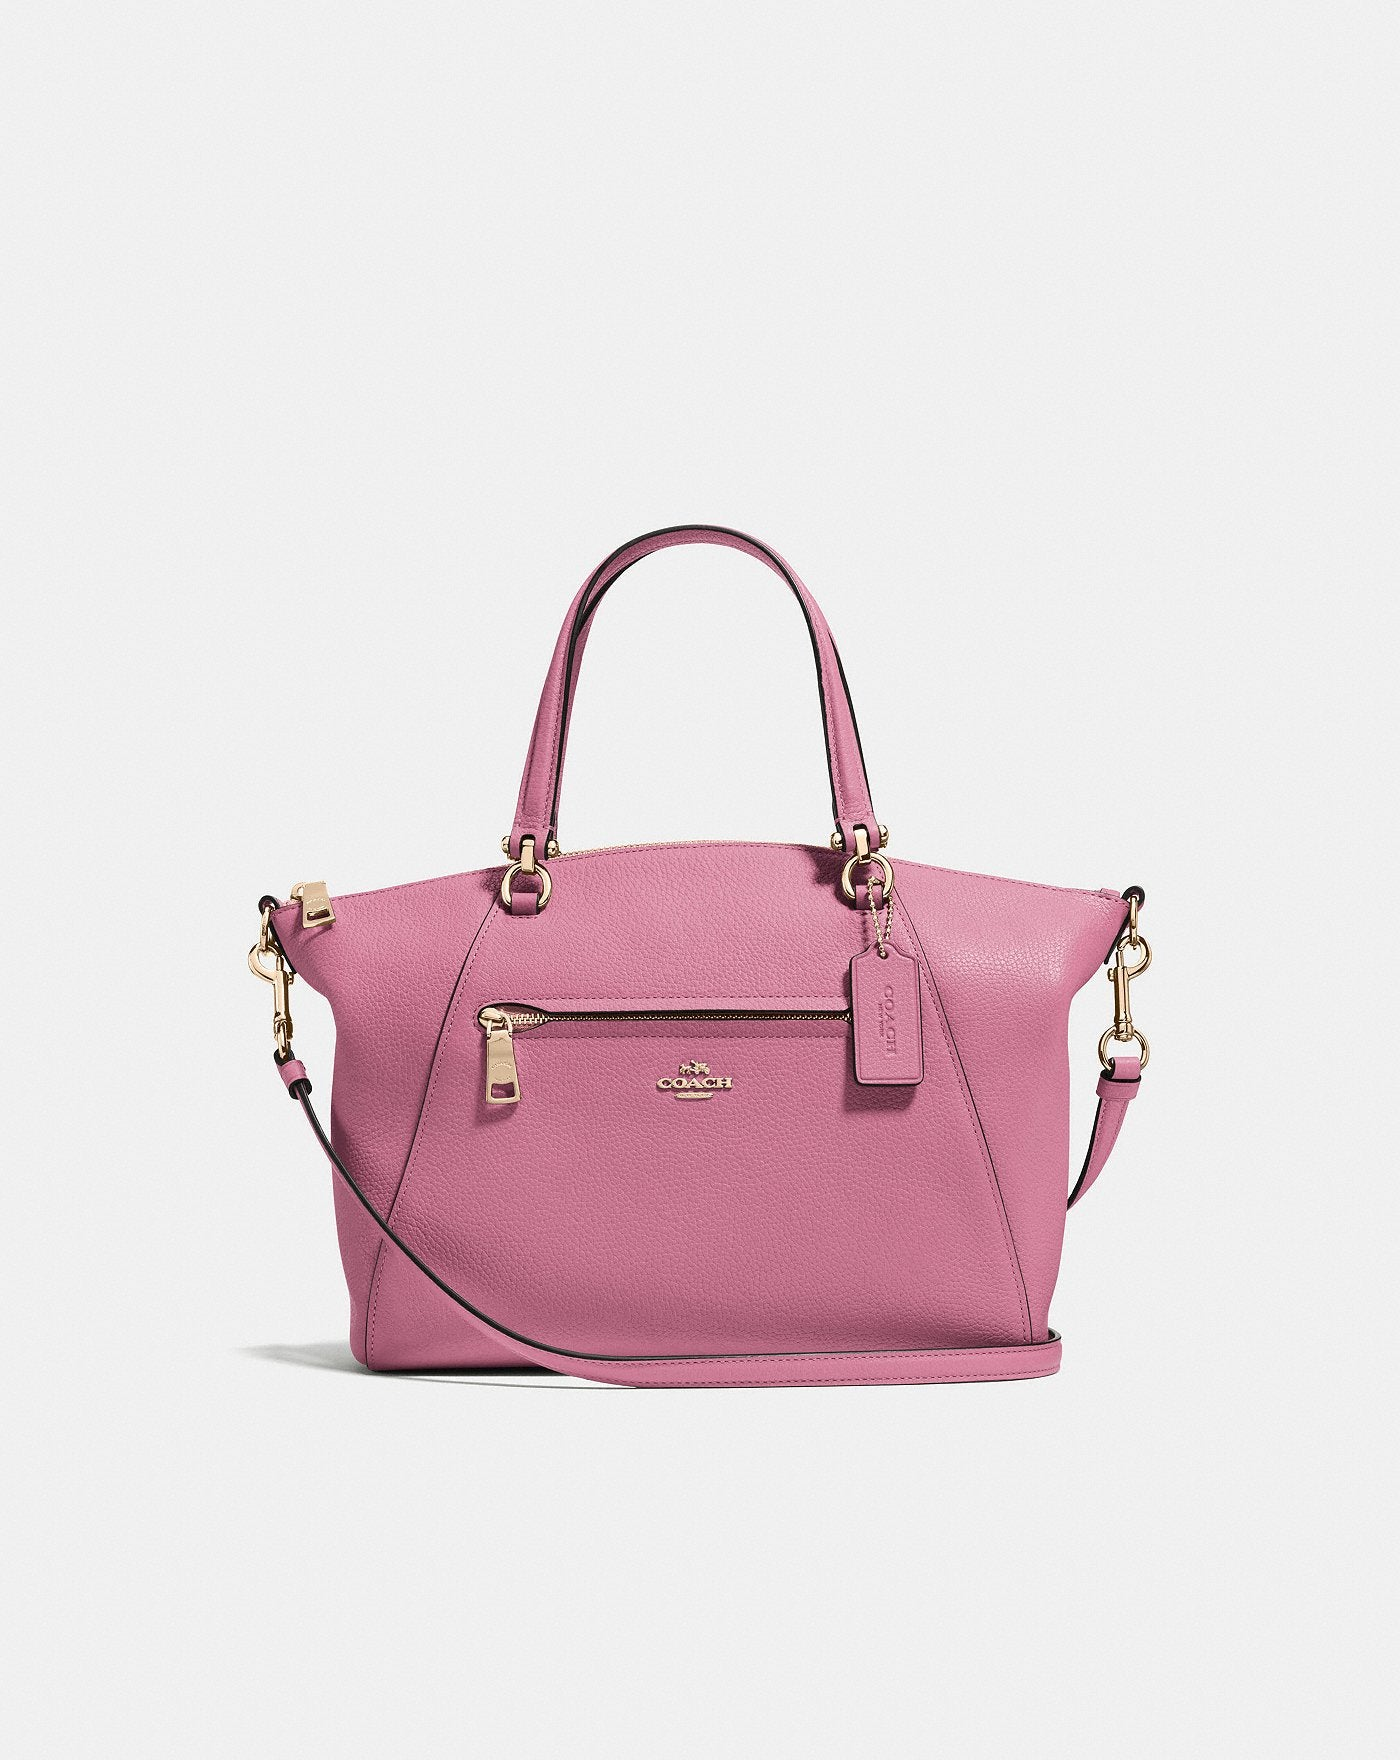 86bfa10c4ca5 Stop It, Sis! No More Fake Handbags In 2019: Get You A Real One For ...